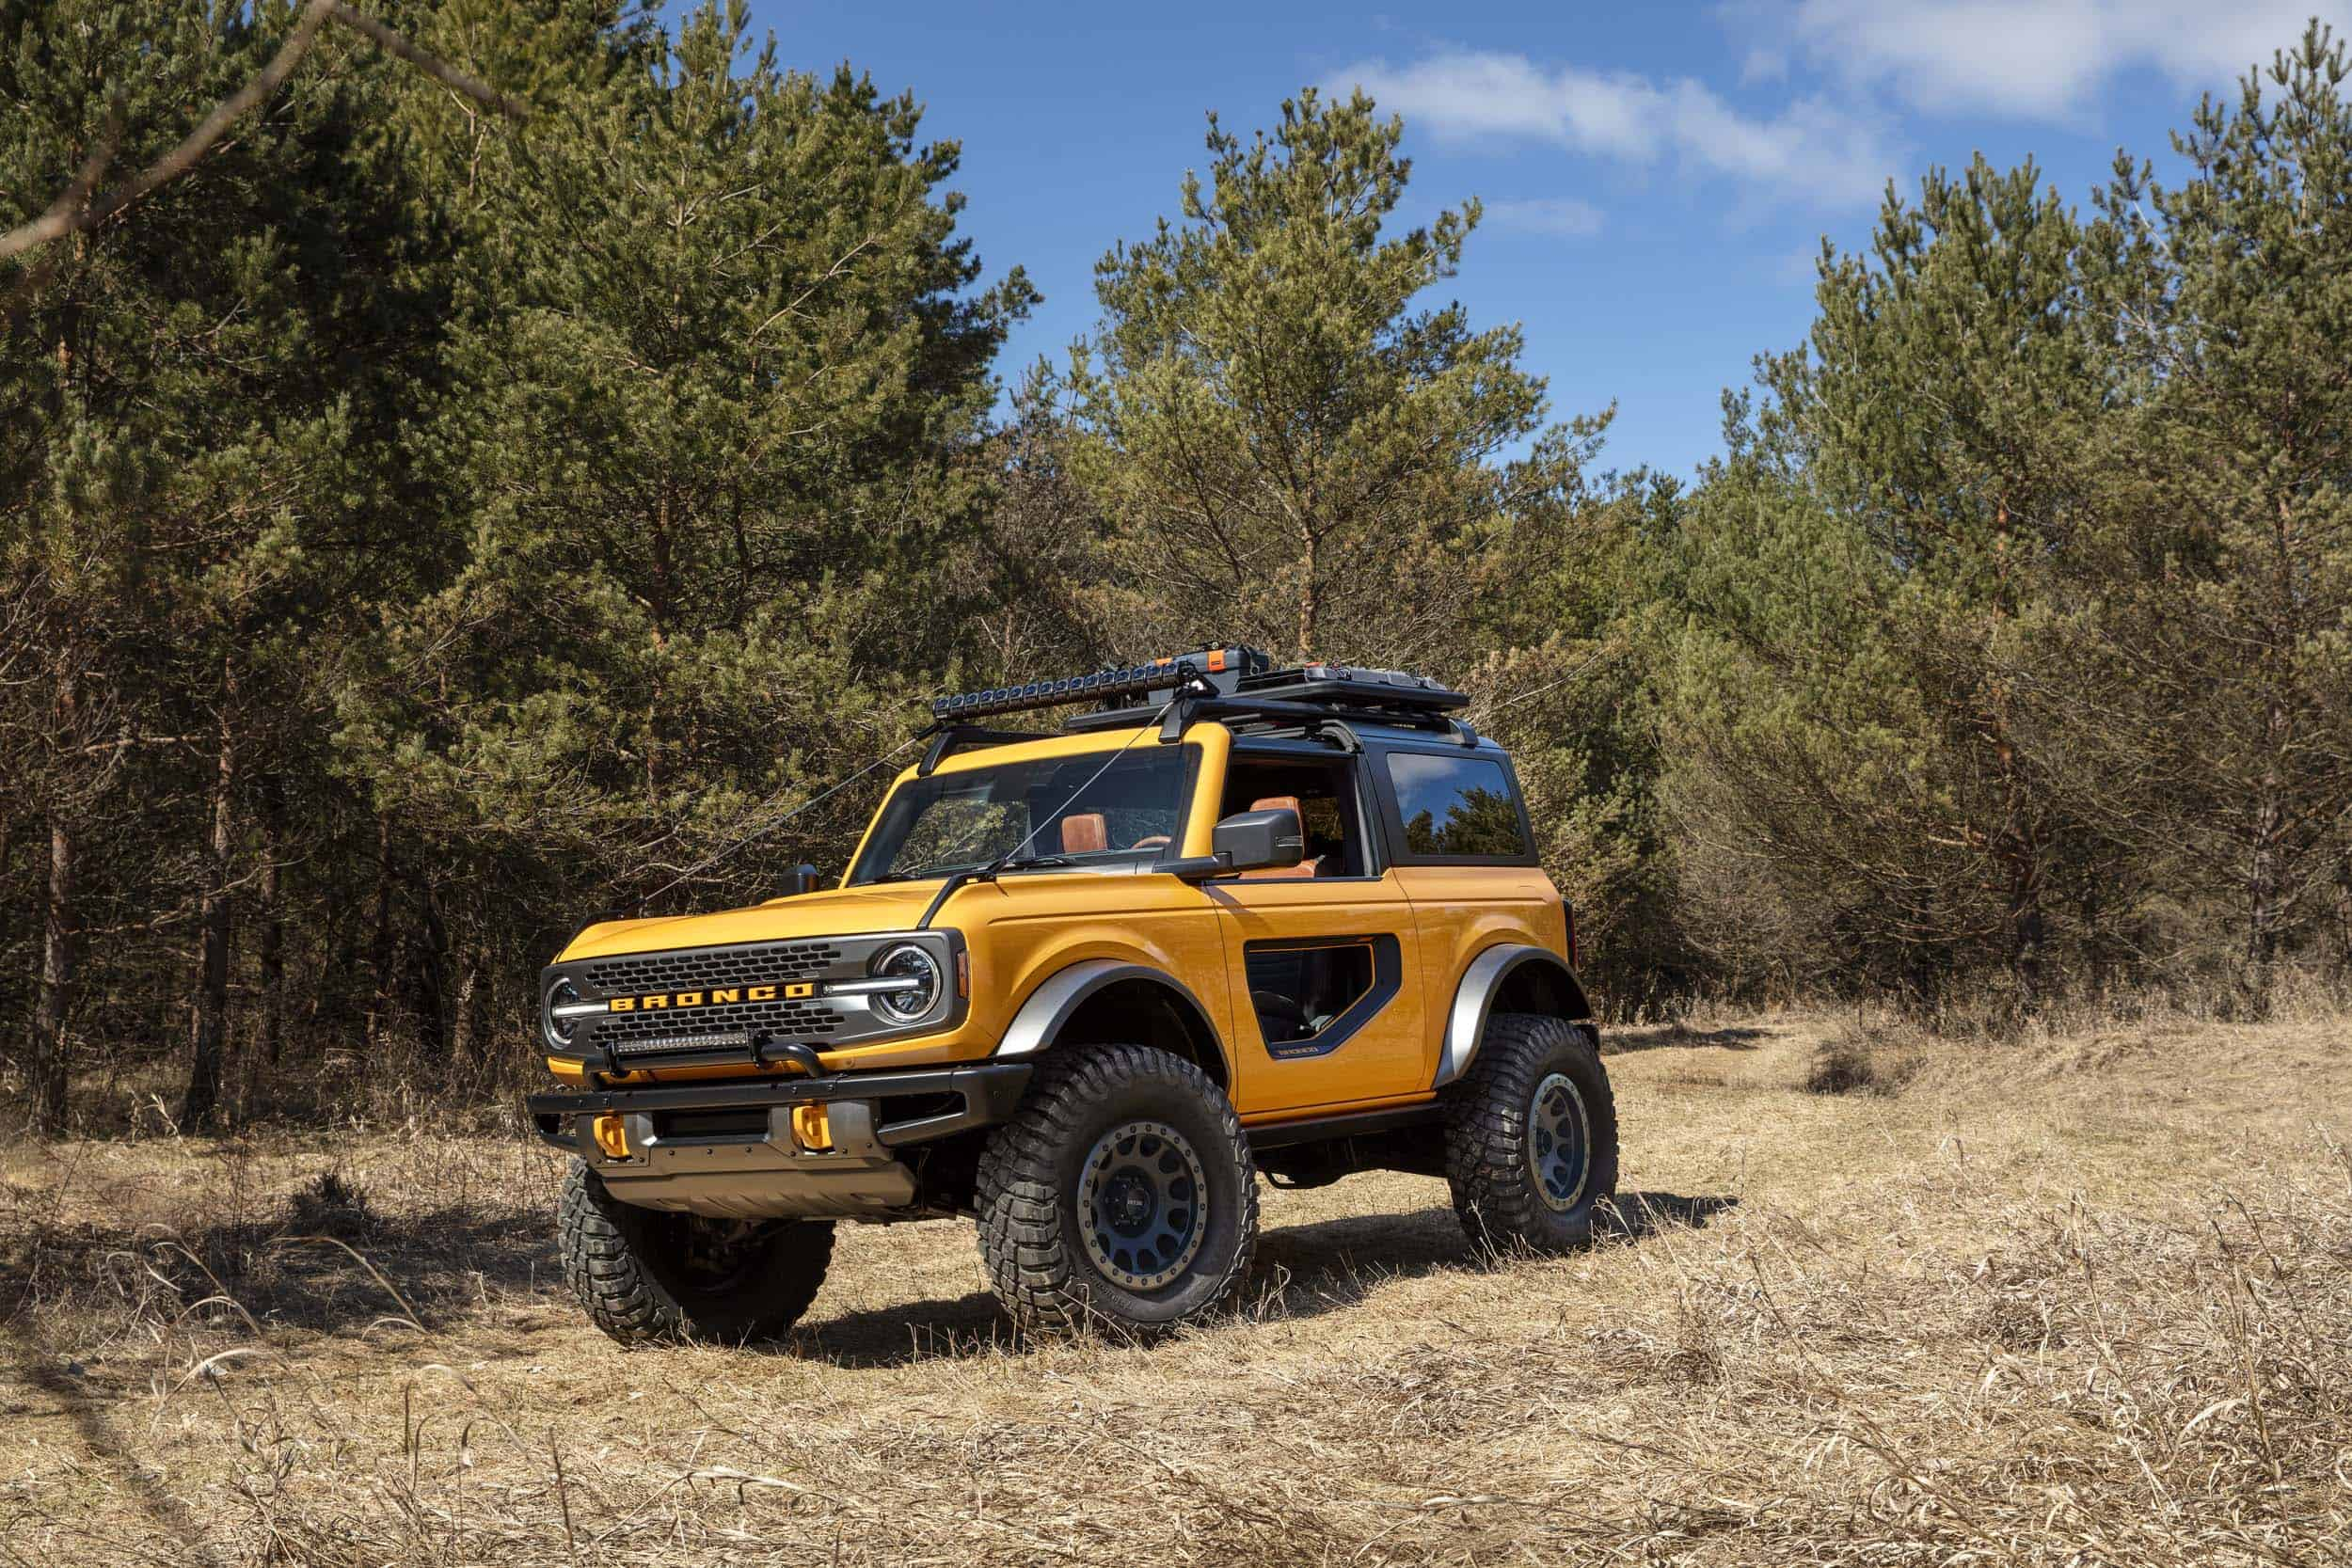 Is the new Bronco better than the Wrangler